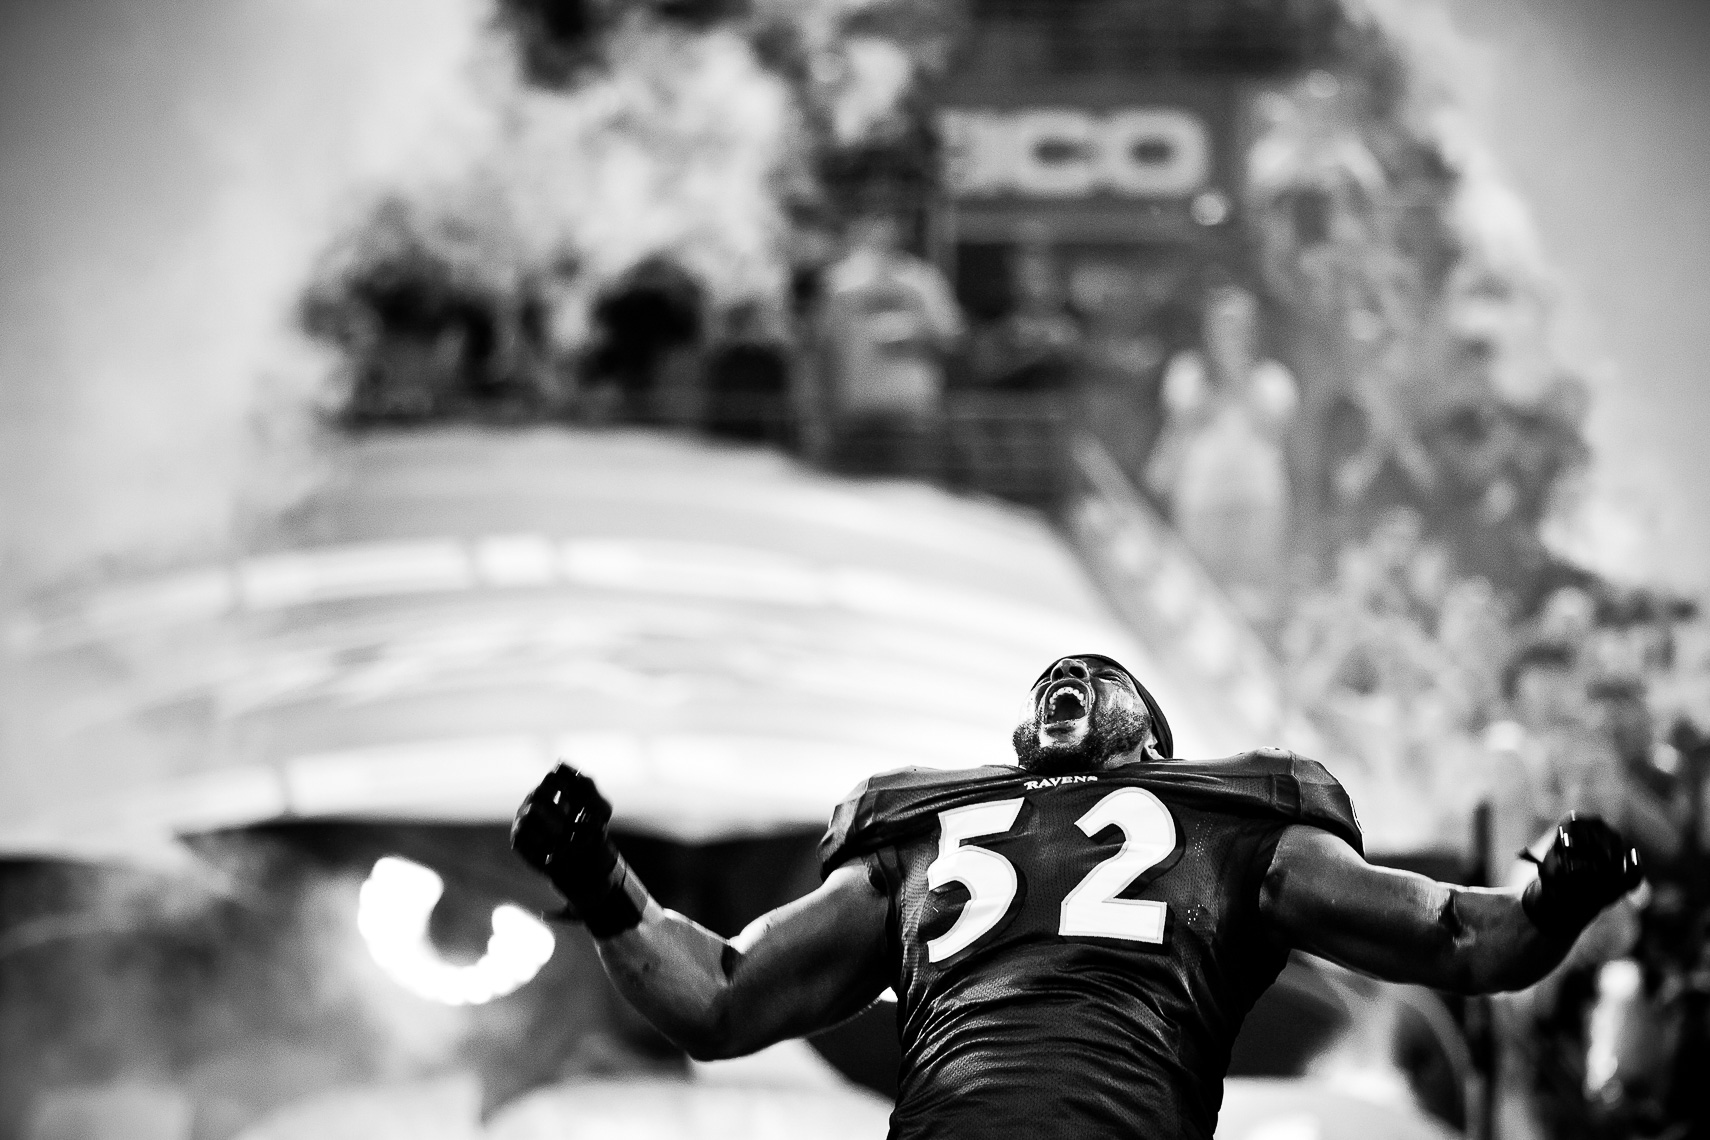 ravens07  NFL Baltimore Ravens photos NFL behind the scenes documentary sports photographer photo of Ray Lewis Halld of Fame